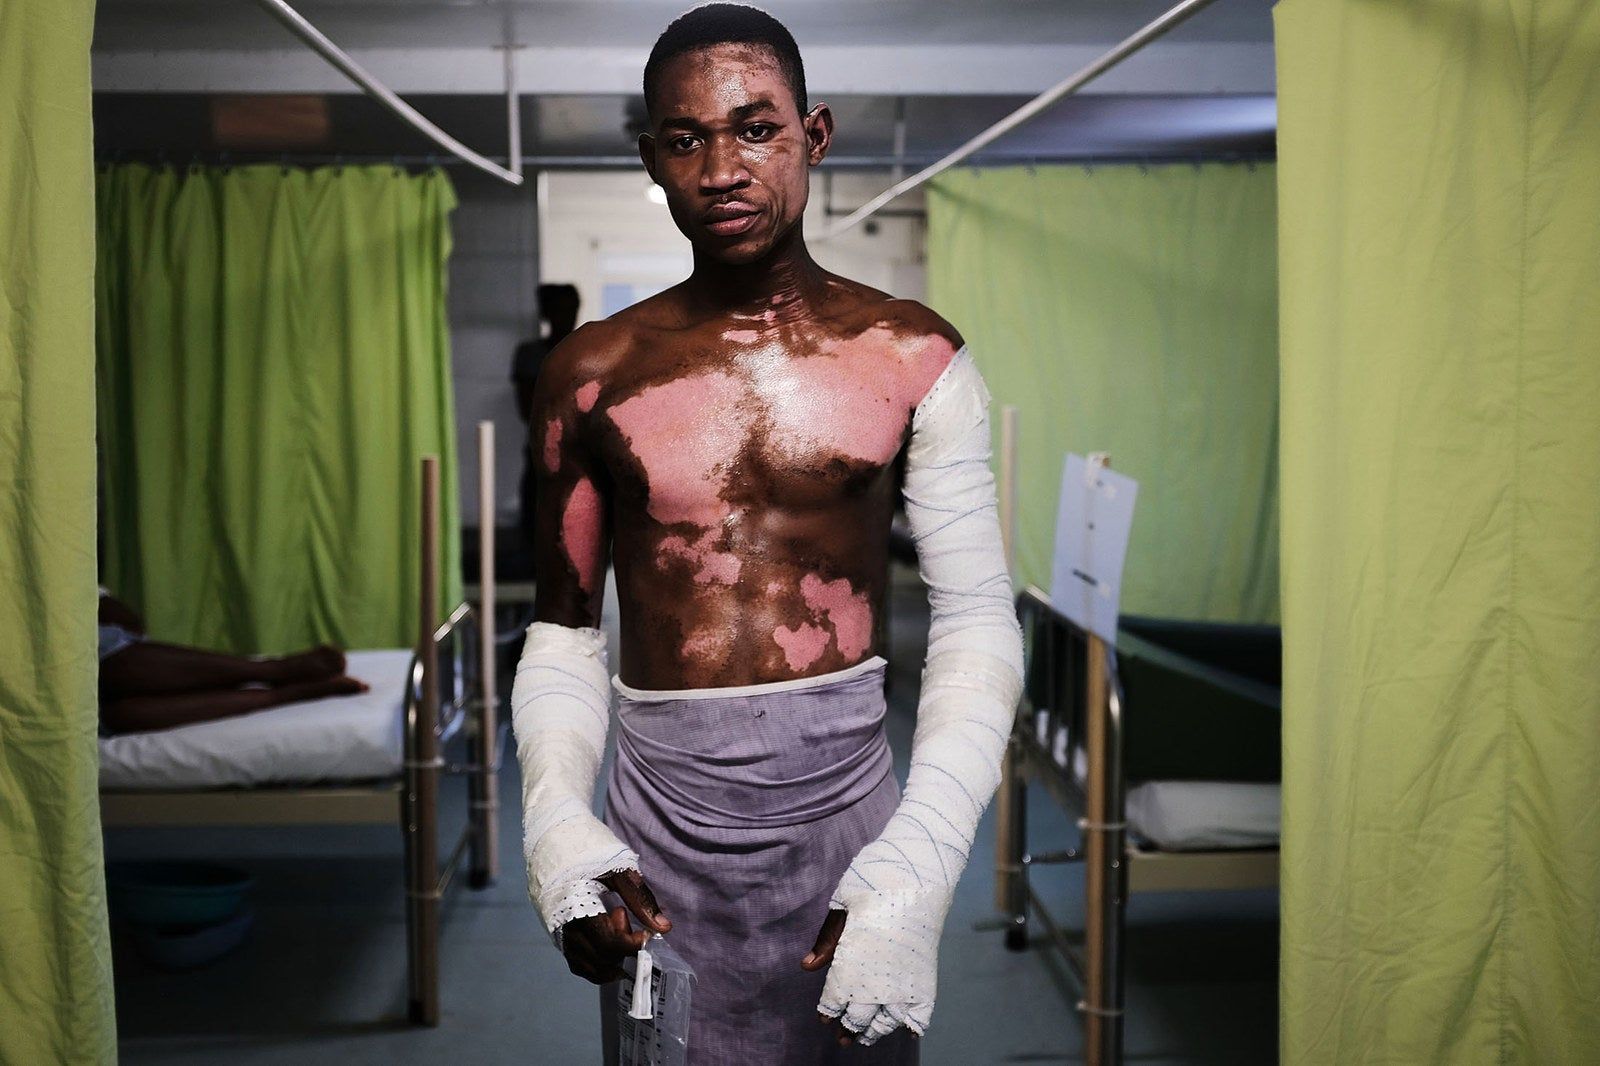 Shnider Avril, who was severely burned by an explosion from a propane tank is treated in the Doctors Without Borders (MSF) Drouillard hospital for burn patients on Feb. 12, in Port-au-Prince, Haiti. The hospital has the first dedicated burn unit in Haiti.